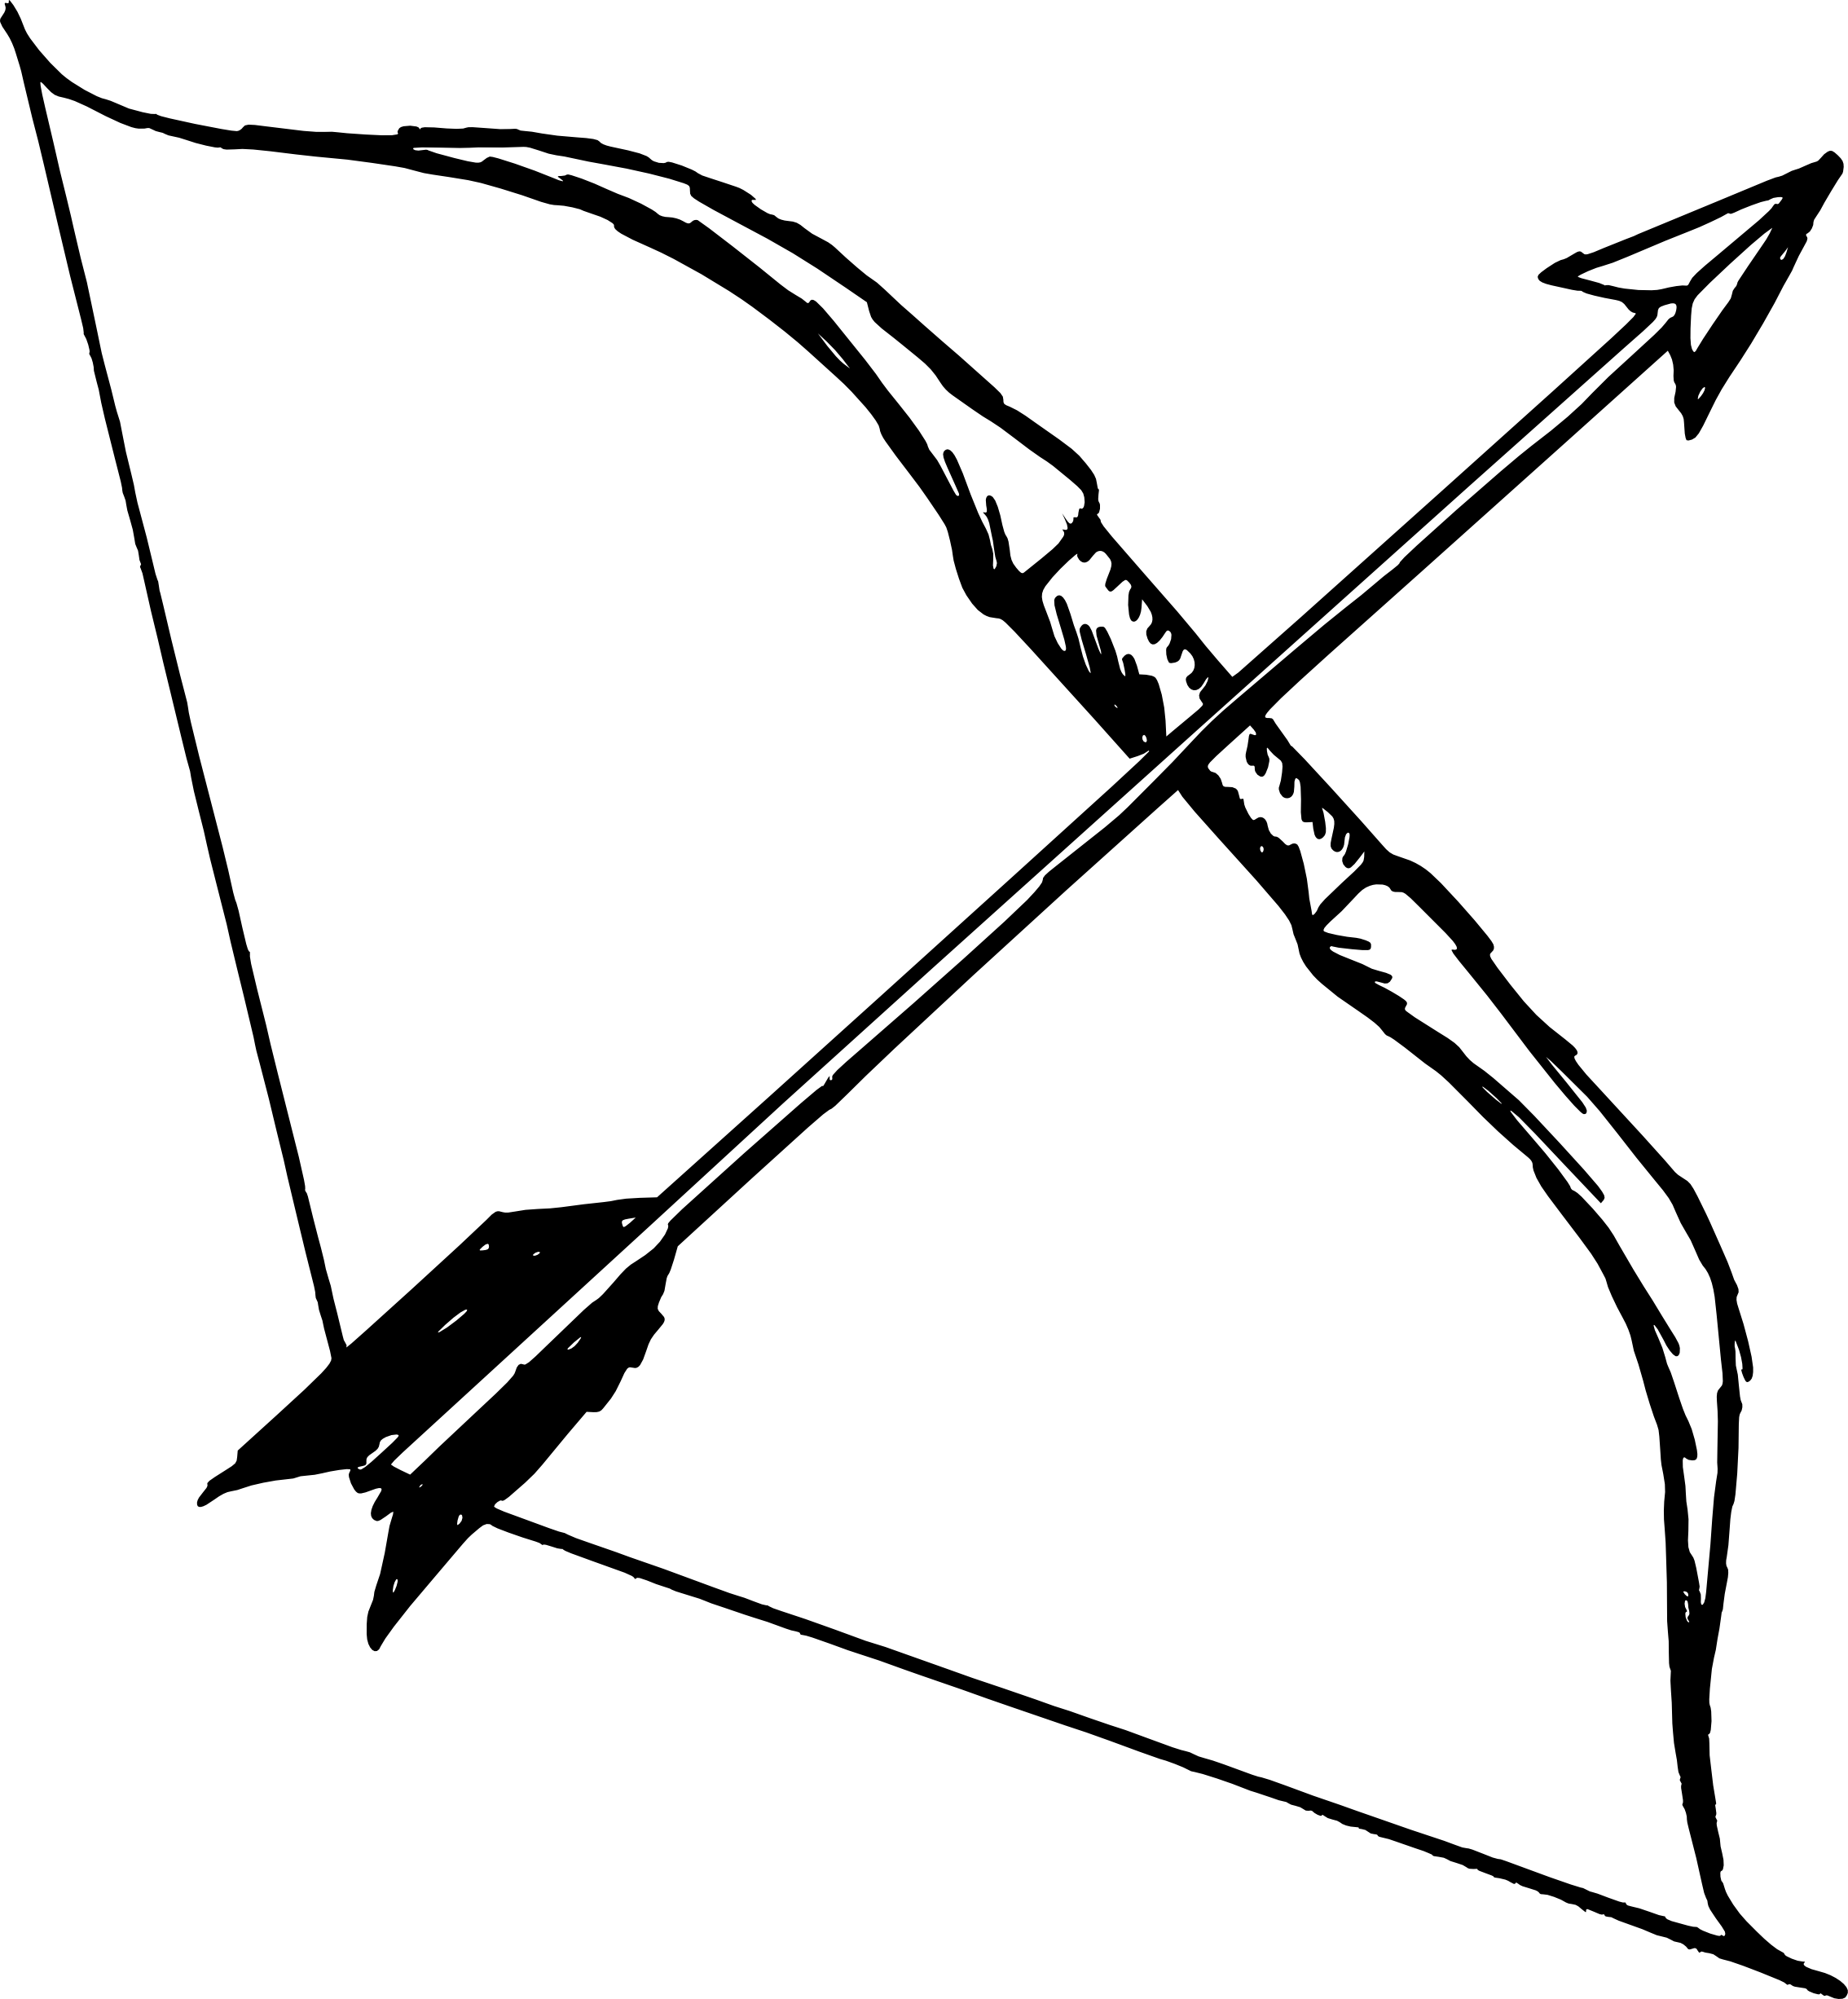 5 Bow and Arrow (PNG Transparent).